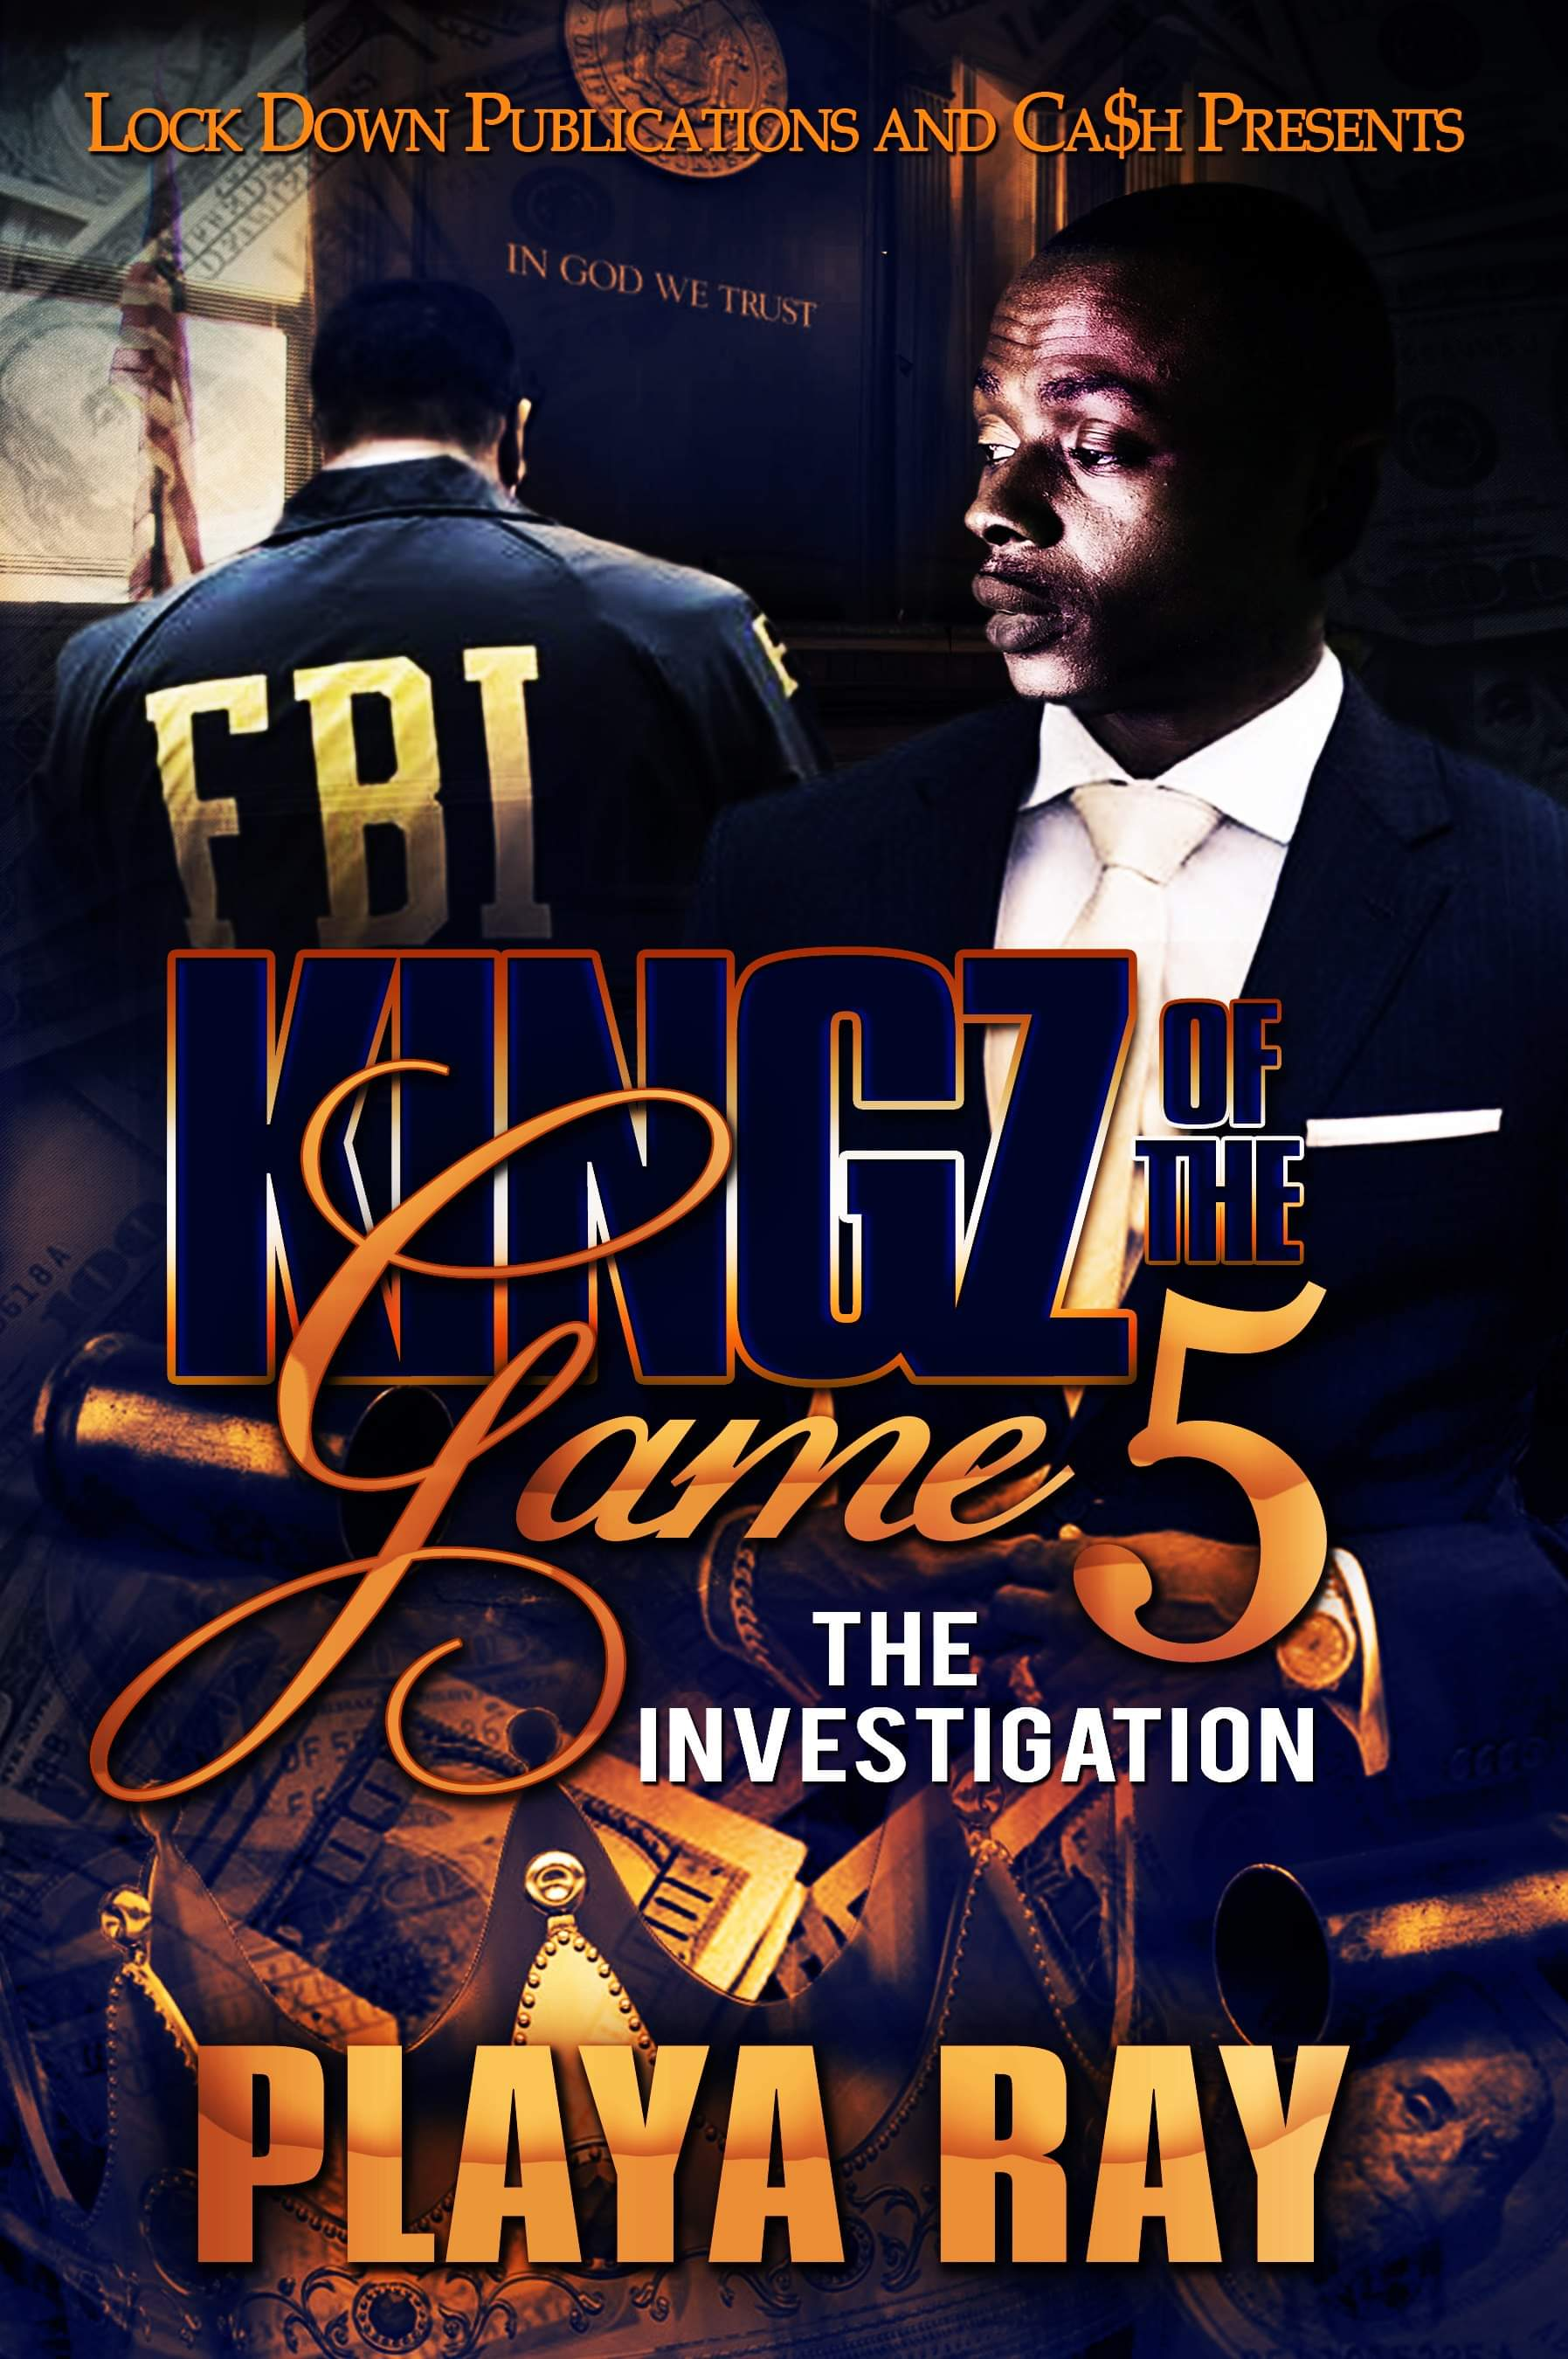 Kingz Of The Game 5 by Playa Ray